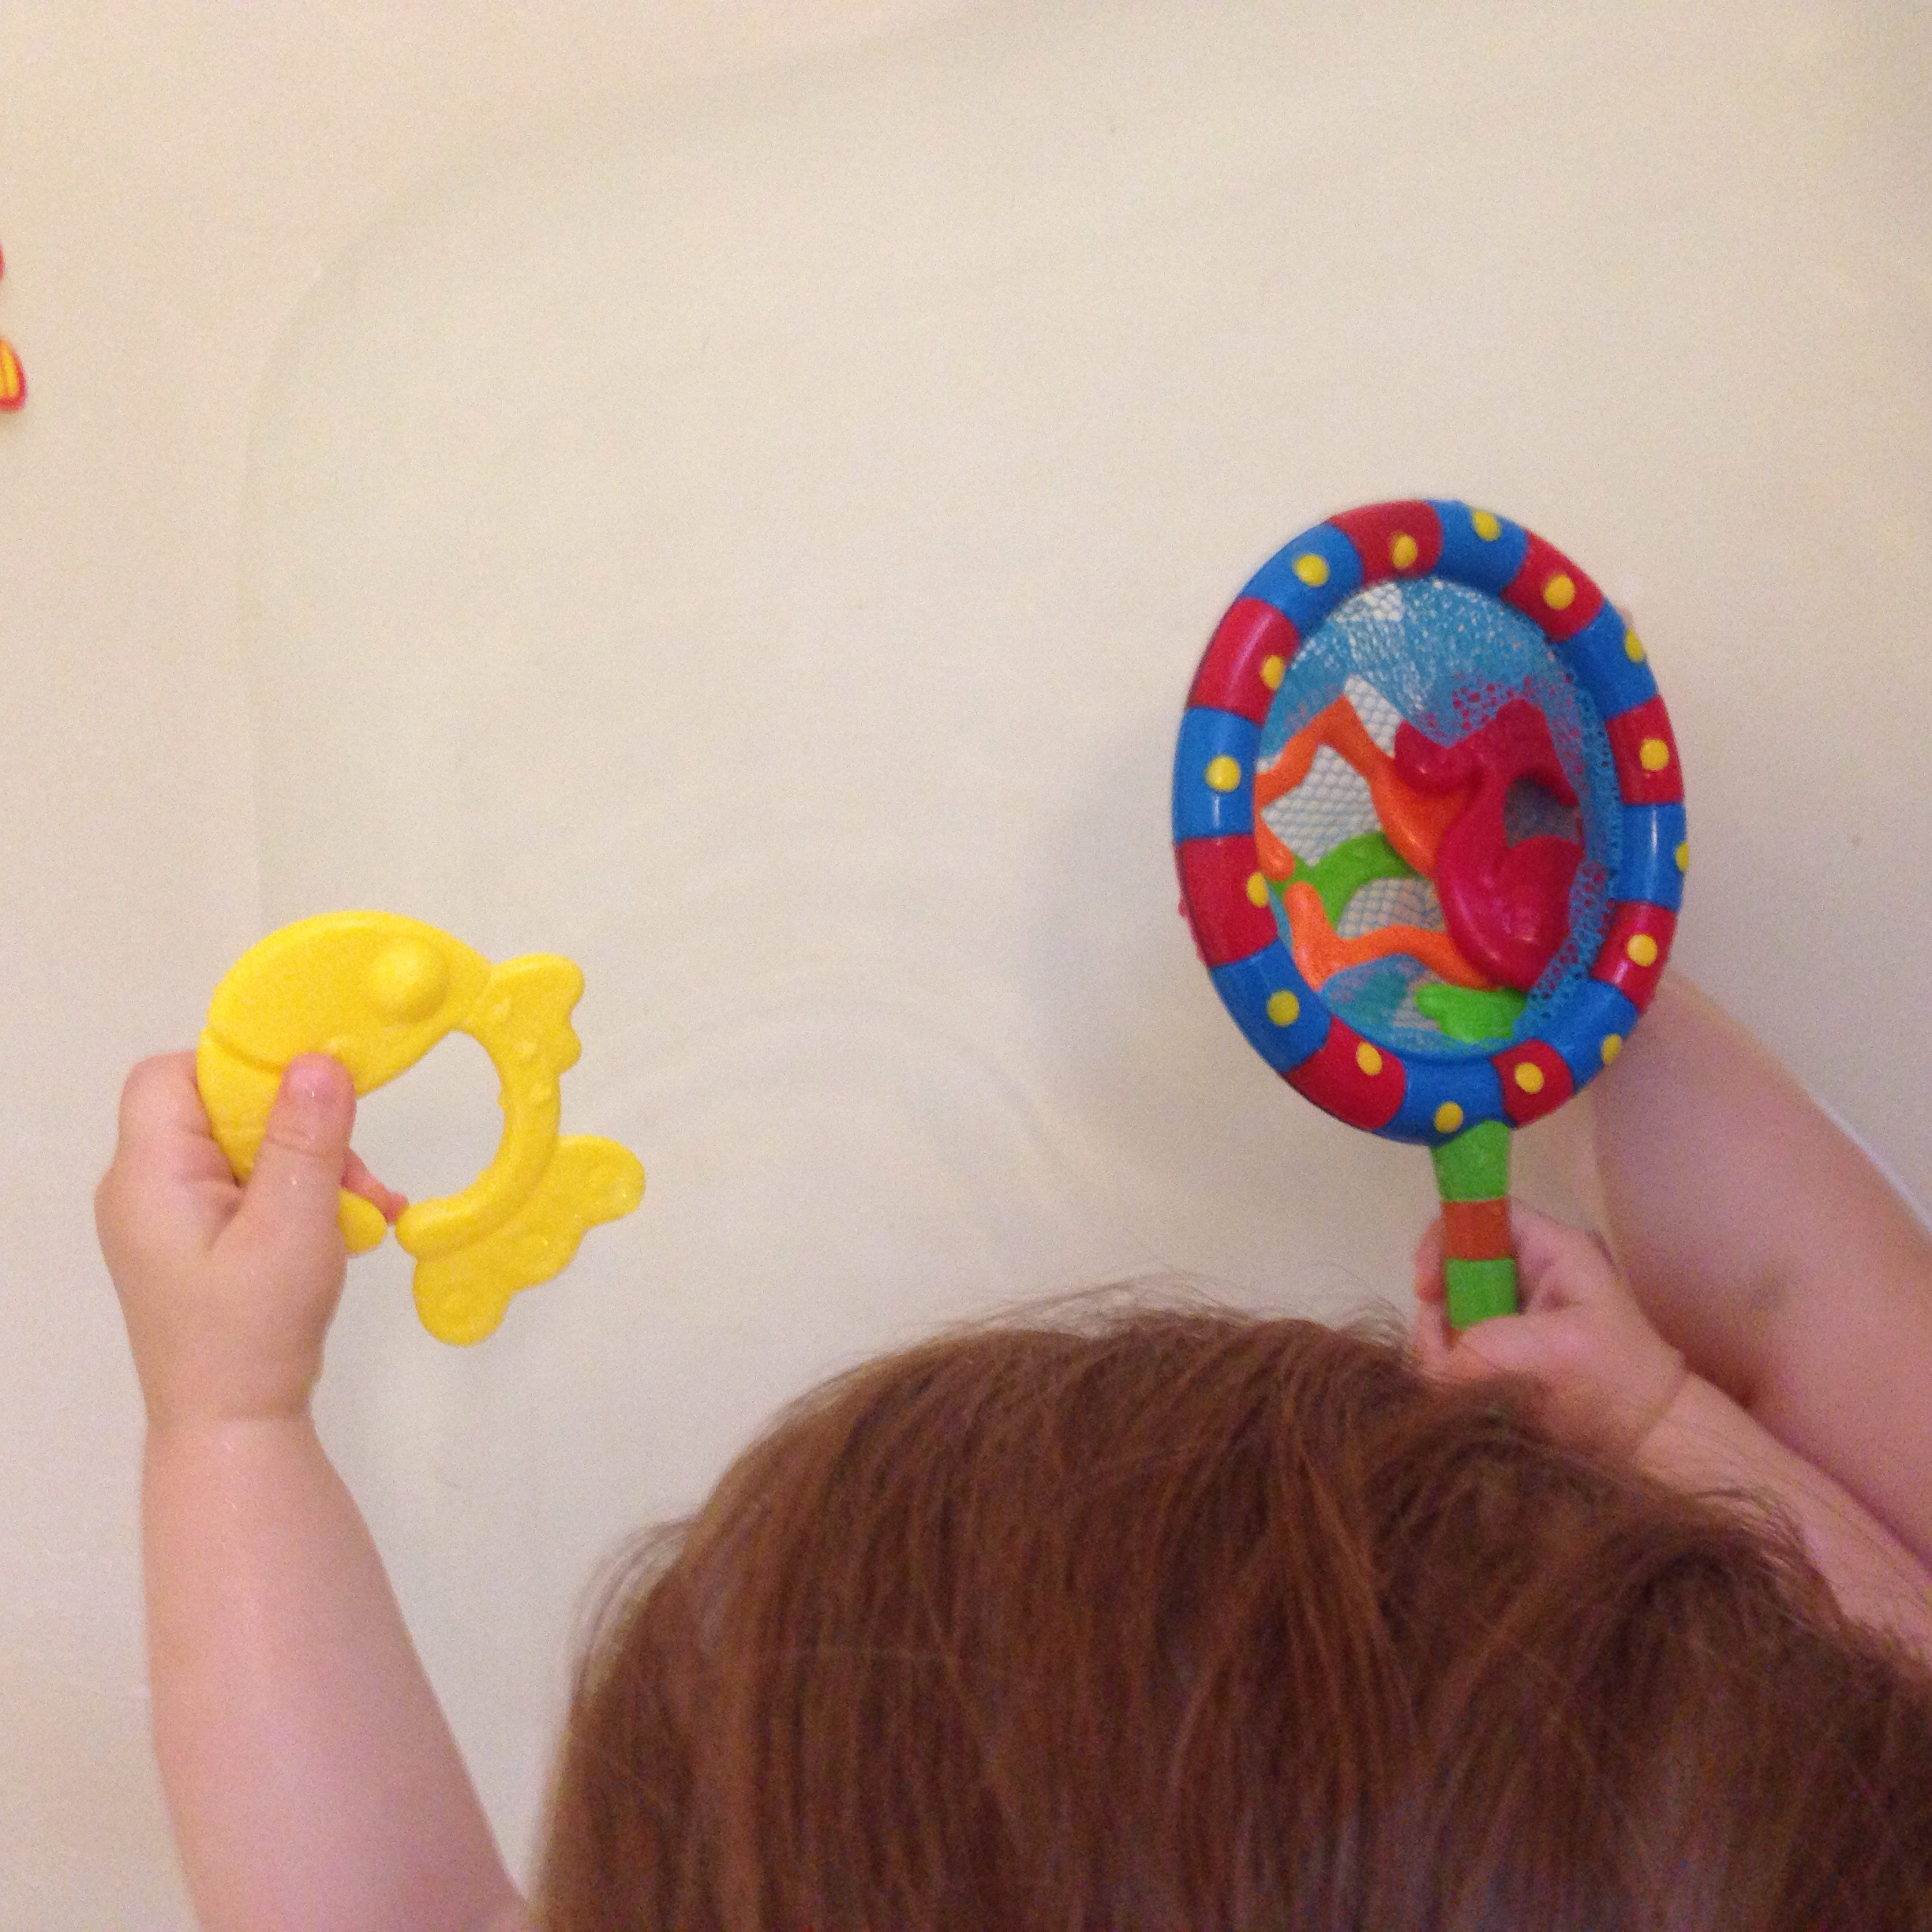 Playing with the Nuby Splash n' Catch Fishing Set in the tub